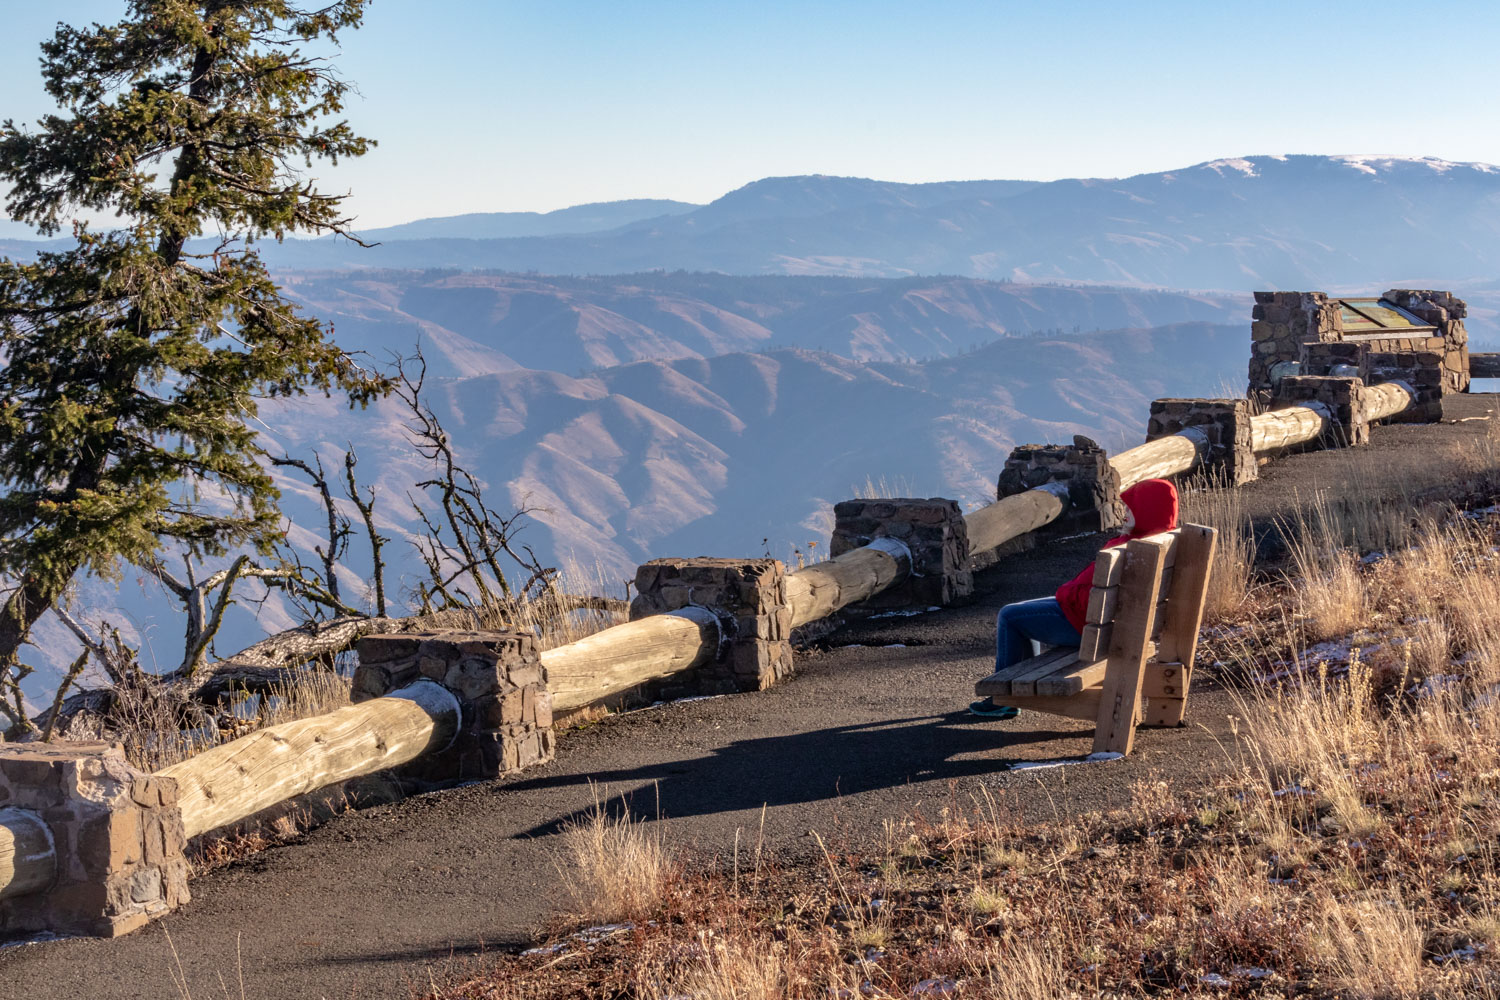 Hell's Canyon Overlook on Hell's Canyon Scenic Byway, Oregon - Photo by Ron Huckins